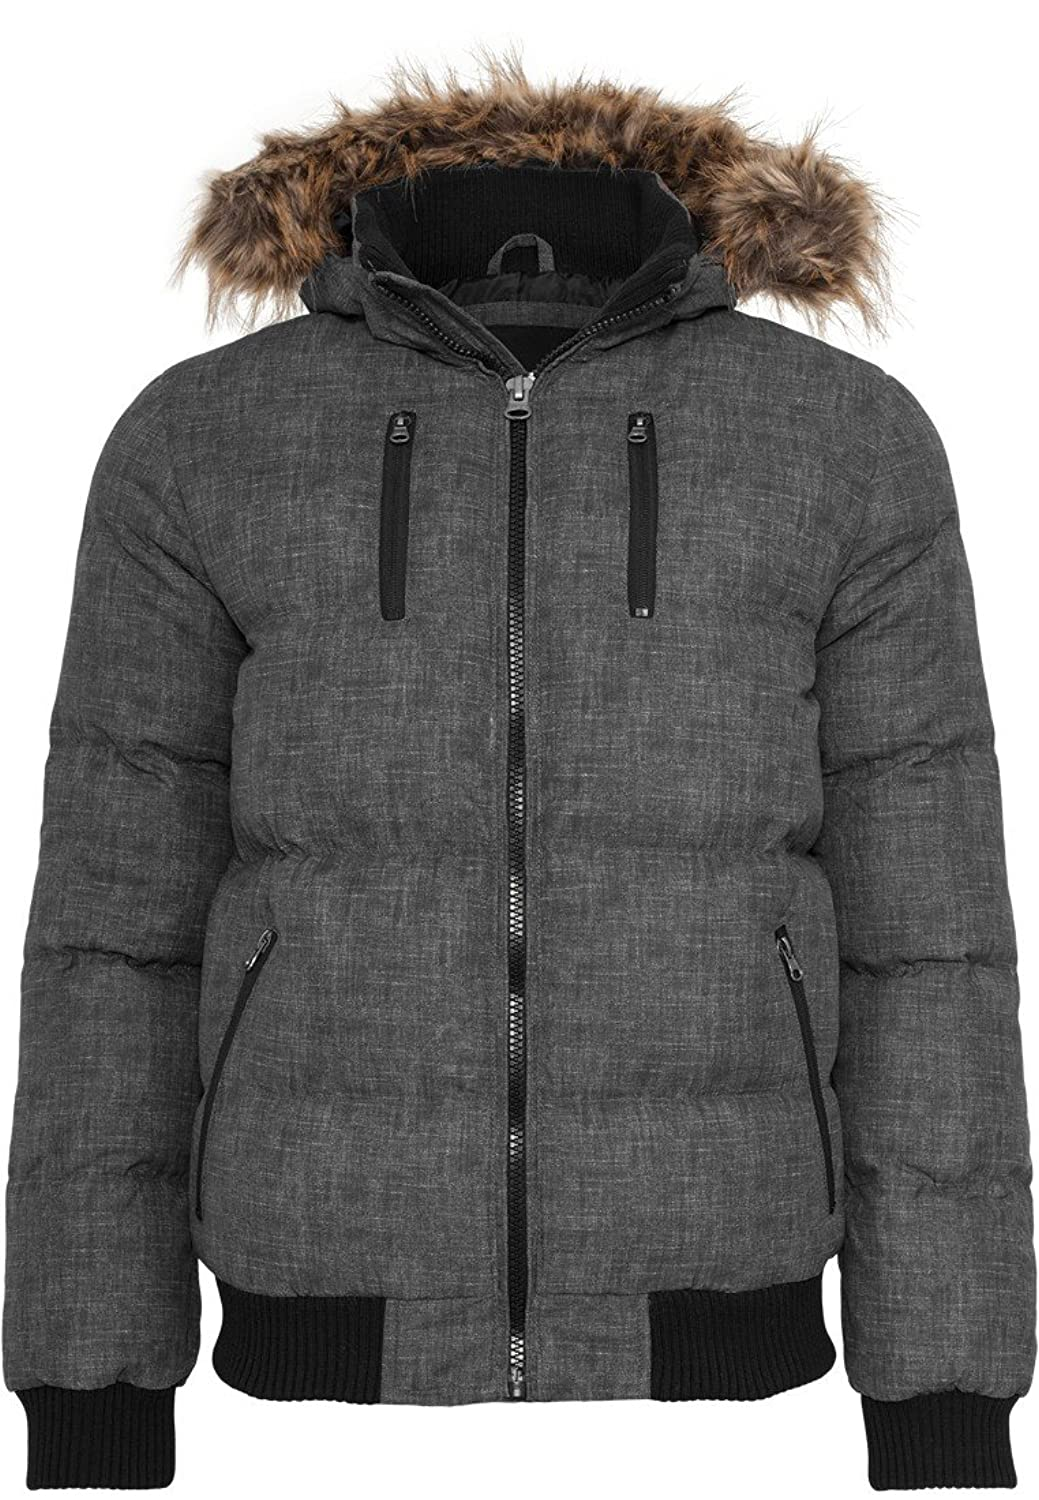 TB894 Melange Expedition Bubble Jacket Herren Jacke Kapuze Winterjacke